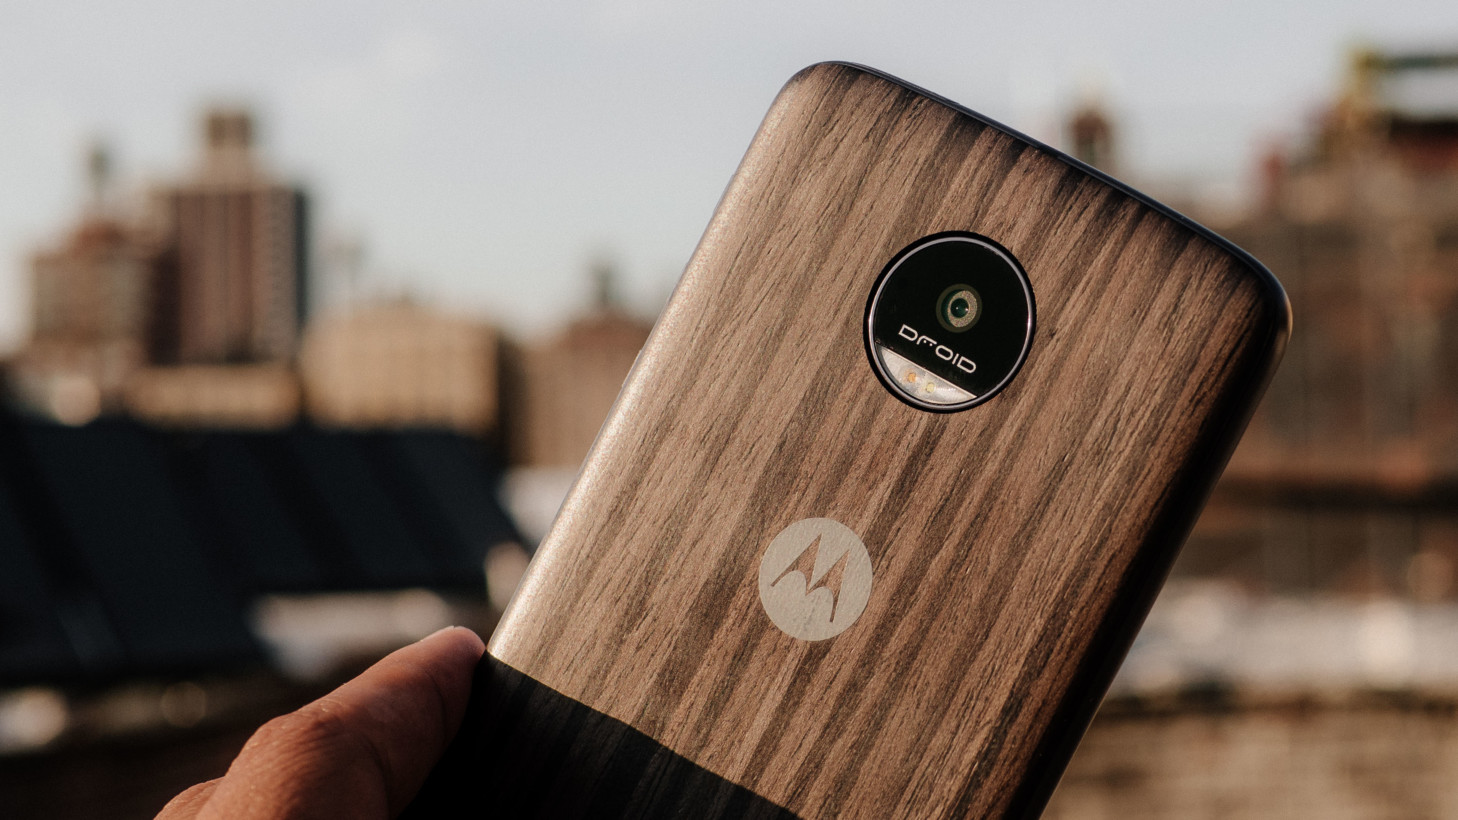 The Moto Z is packaged with a Style Mod, at least on Verizon, so you don't have to see the 'real'back unless you want to. Notice the camera is now flush with the body.